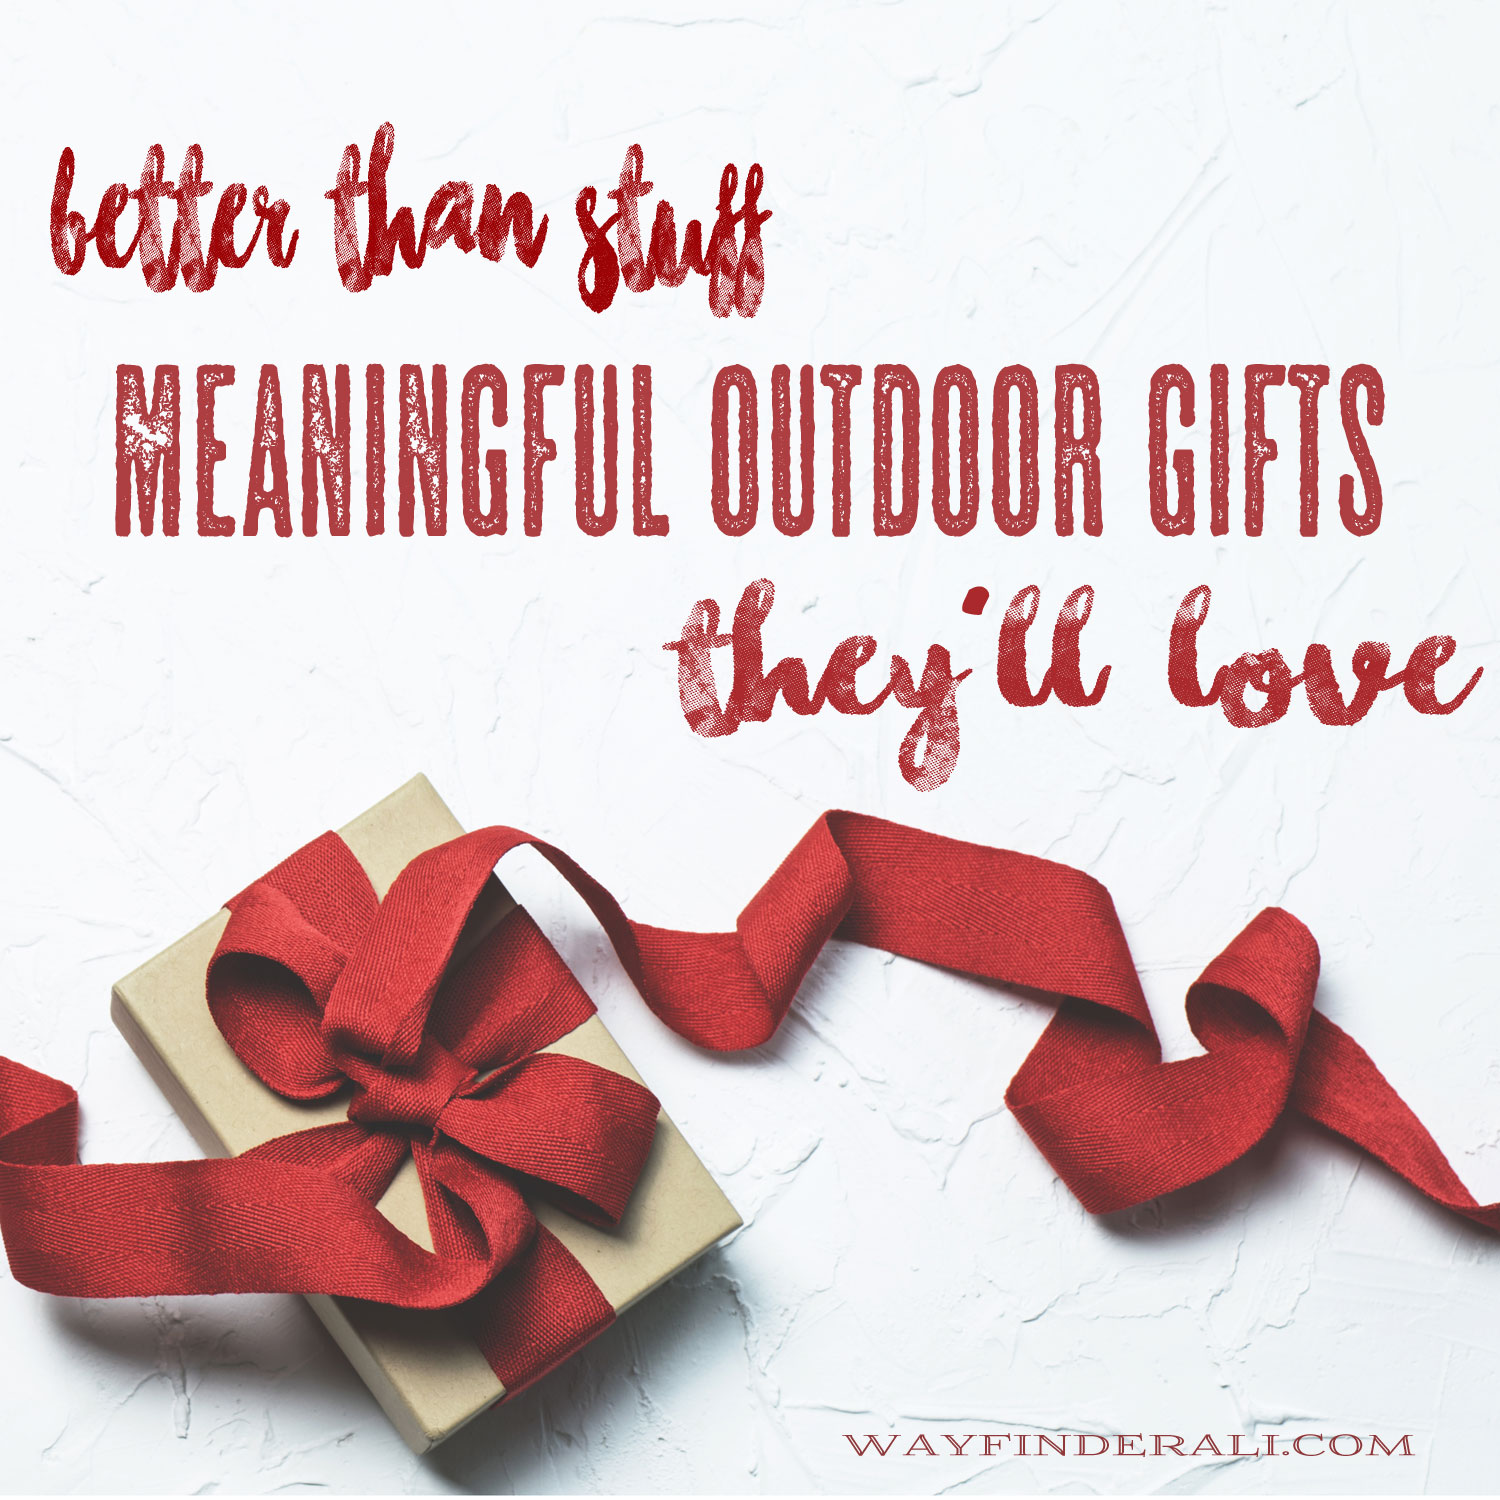 1972796d8e0 Wayfinder Ali  Better Than Stuff  Meaningful Outdoor Gifts They ll Love